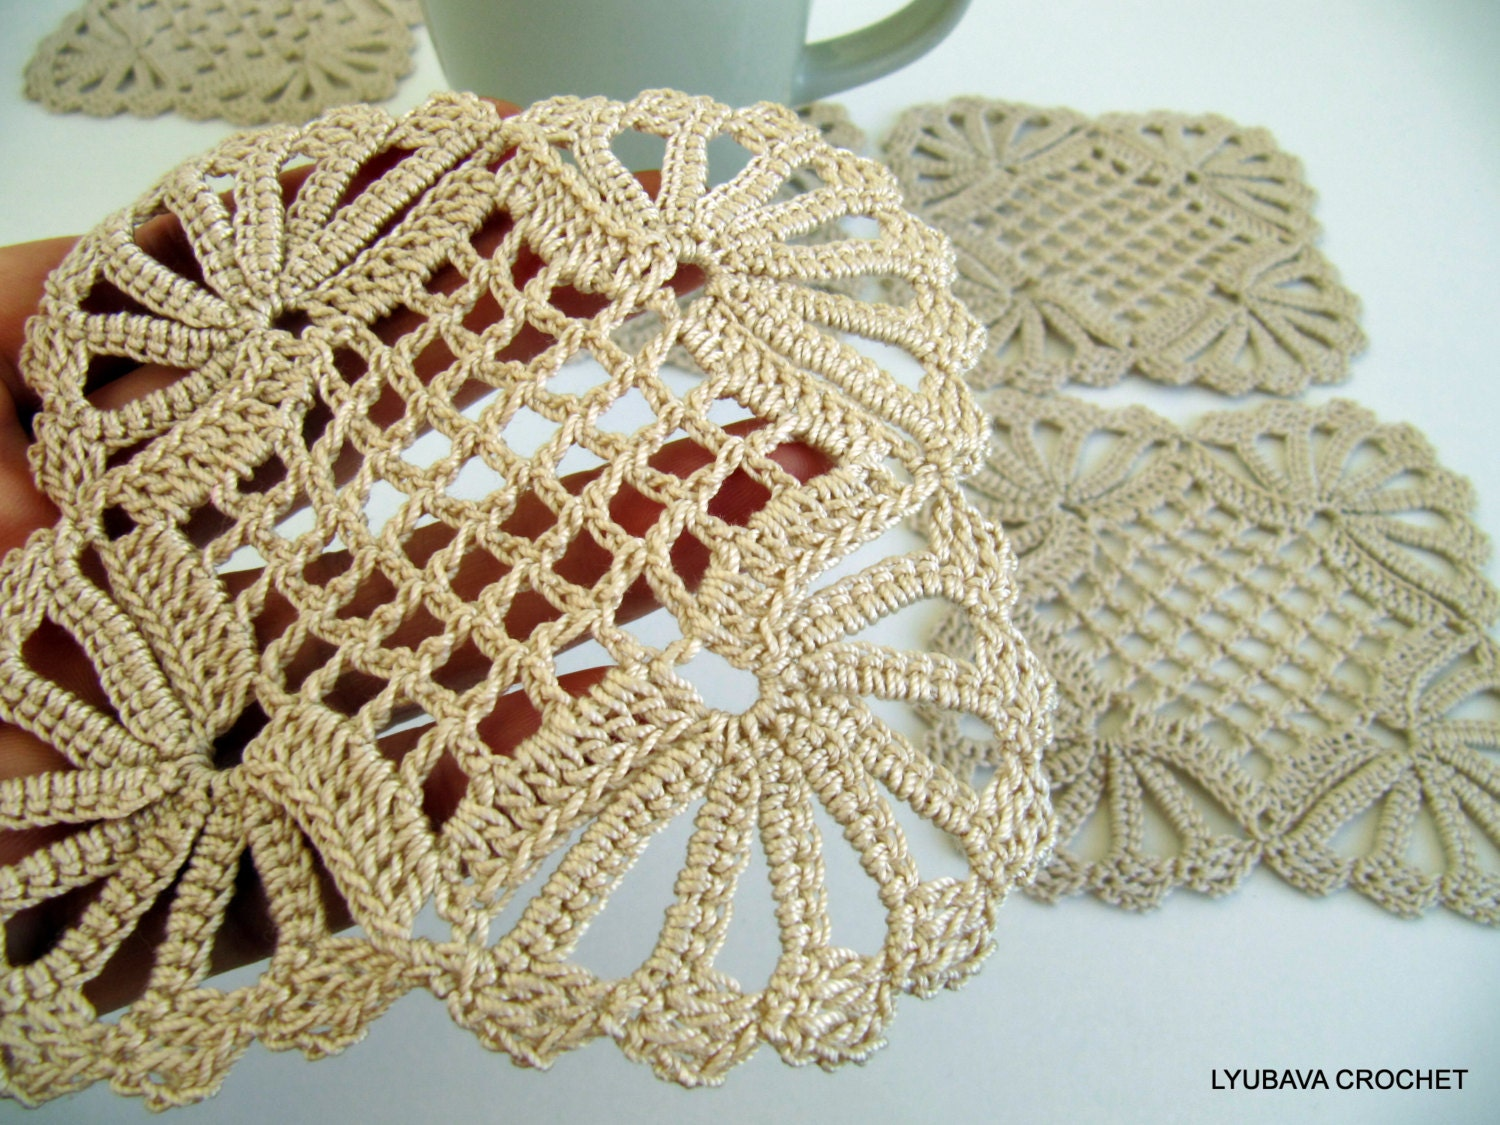 Crochet coaster pattern shabby chic decor diy coasters zoom bankloansurffo Choice Image